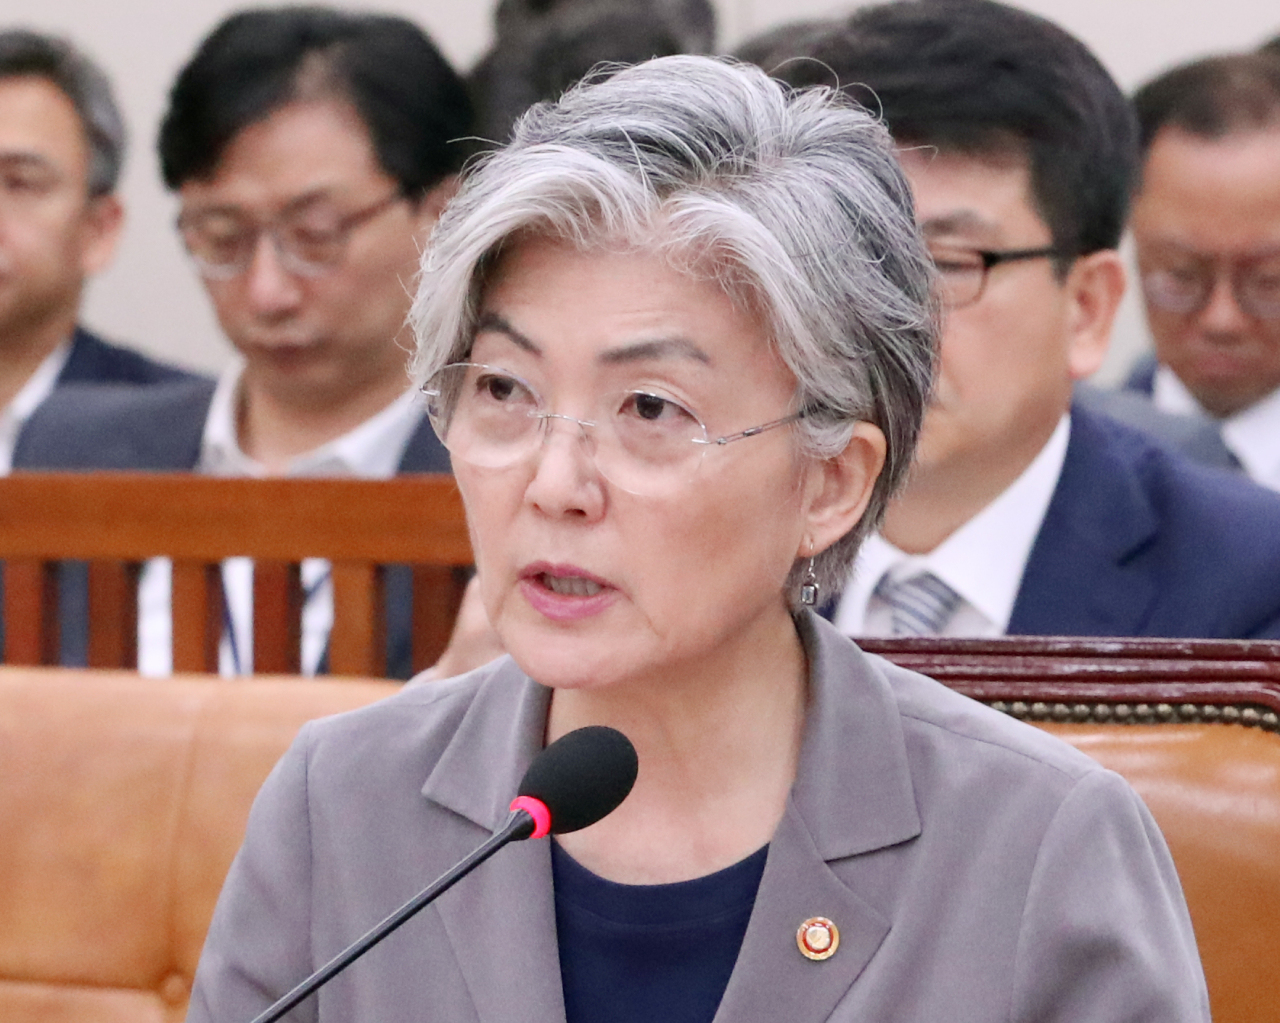 Foreign Minister Kang Kyung-wha speaks at a parliamentary committee session on Tuesday. (Yonhap)